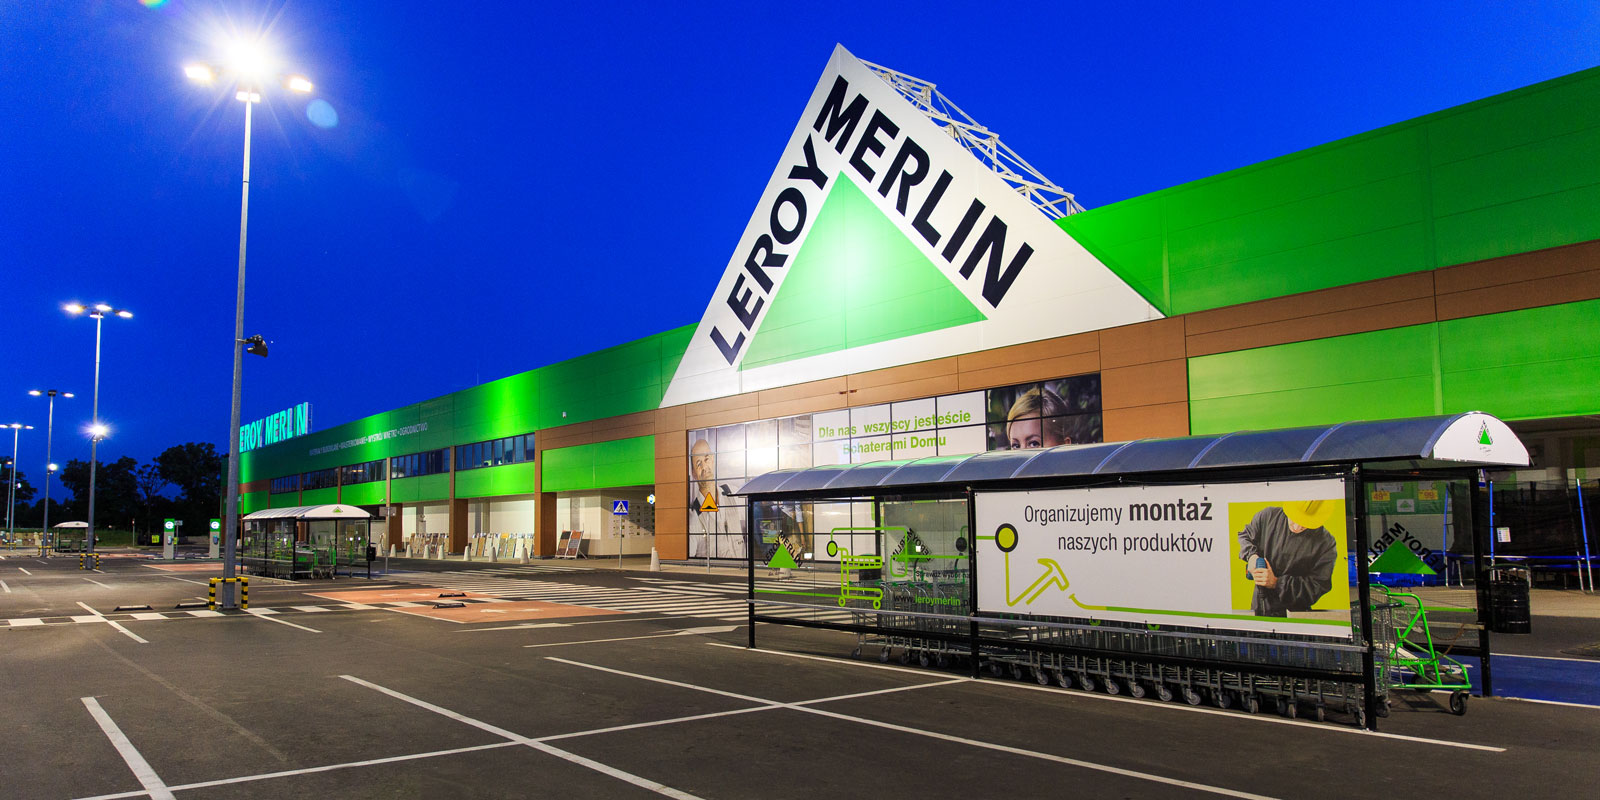 Leroy merlin public utility buildings completed projects for Coprigradini leroy merlin